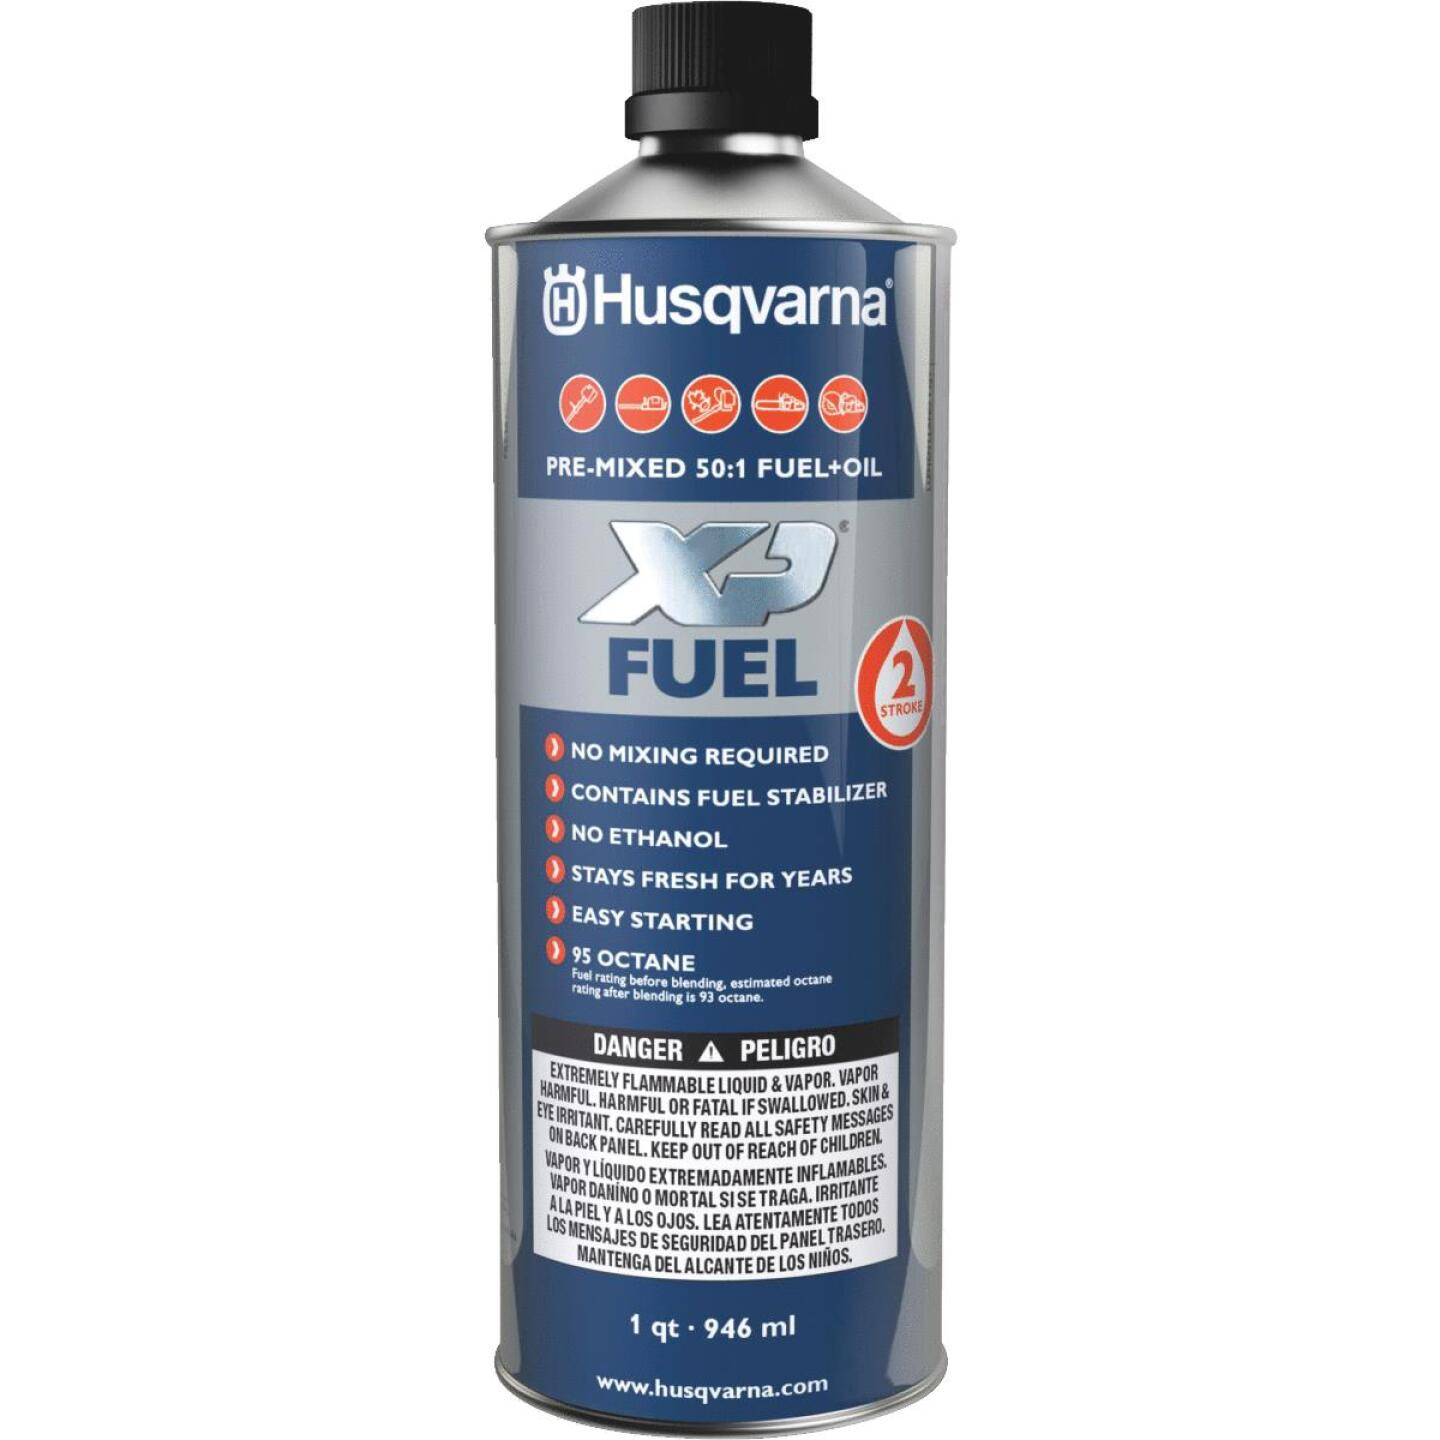 Husqvarna XP 32 Oz. 50:1 Ethanol-Free Small Engine Fuel & Oil Pre-Mix Image 1